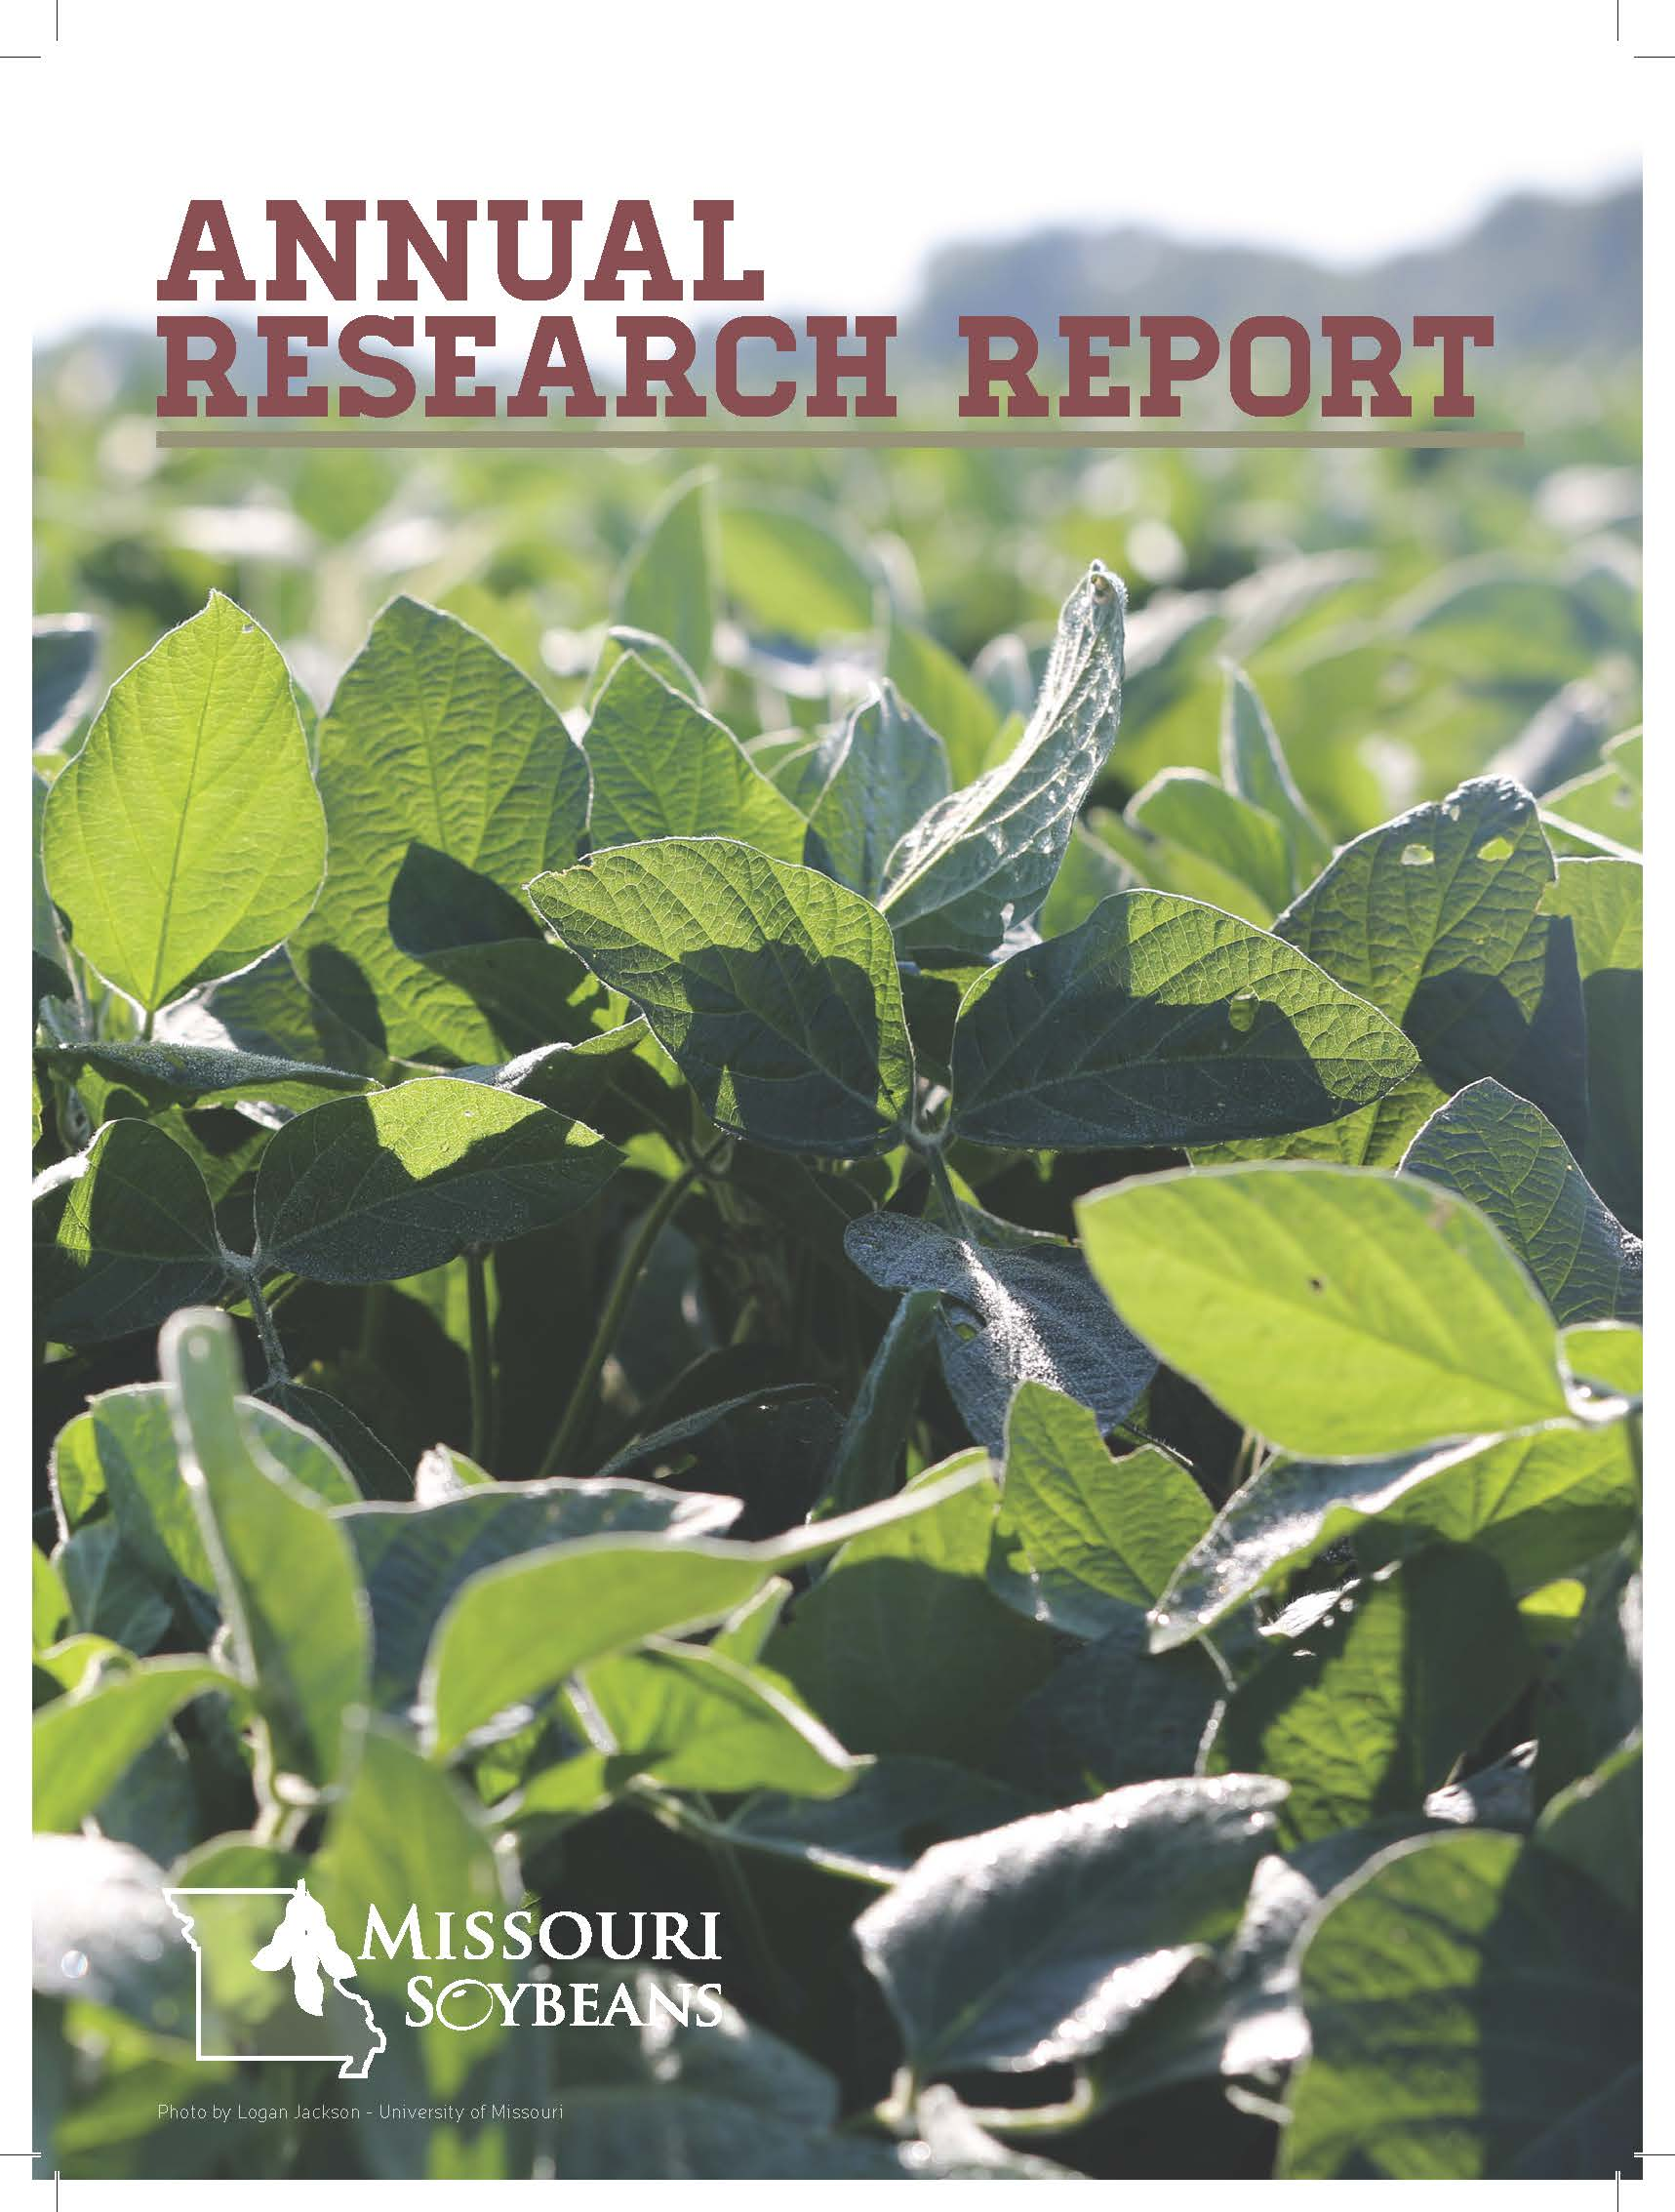 Missouri's 2017-2018 Research Report